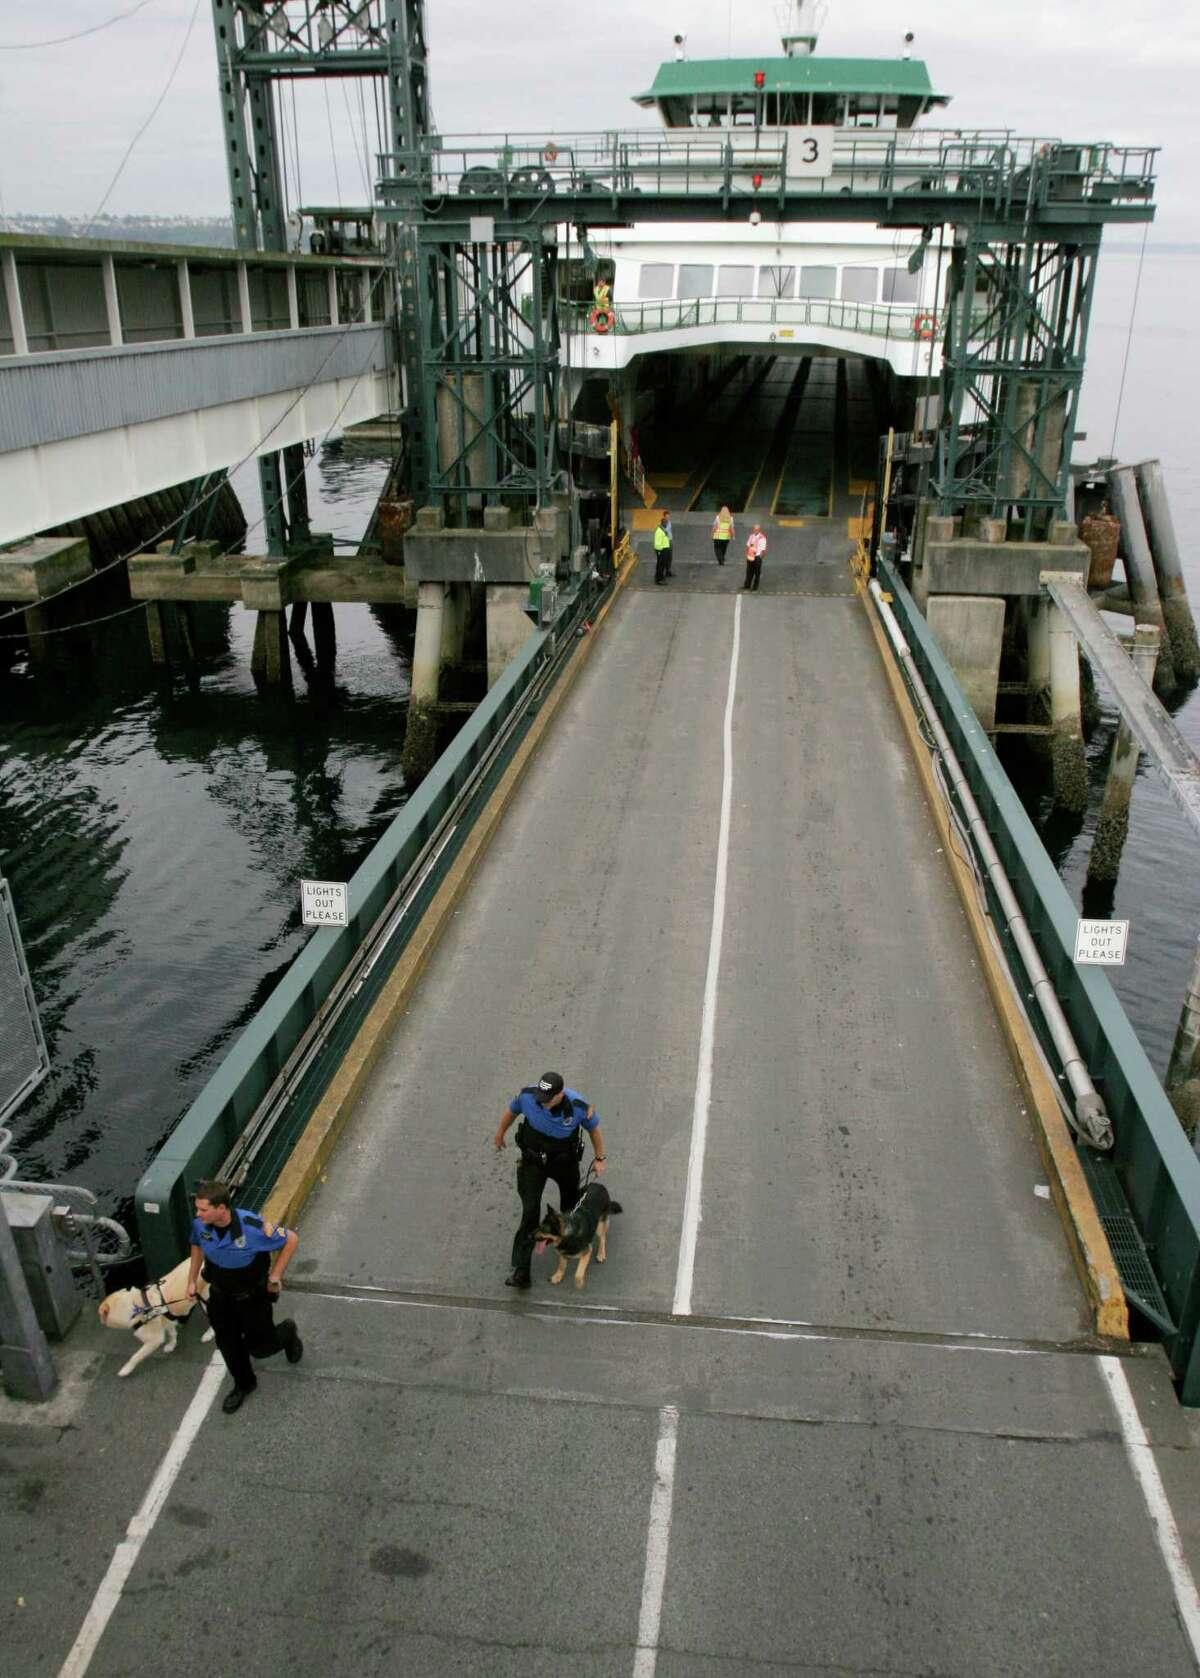 King County prosecutors say a 69-year-old man used his Mercedes to cut the ferry loading line at Seattle's Colman Dock and ram a dock attendant, then still expected to board the sailing to Bainbridge Island, cursing at ferry employees all the while.